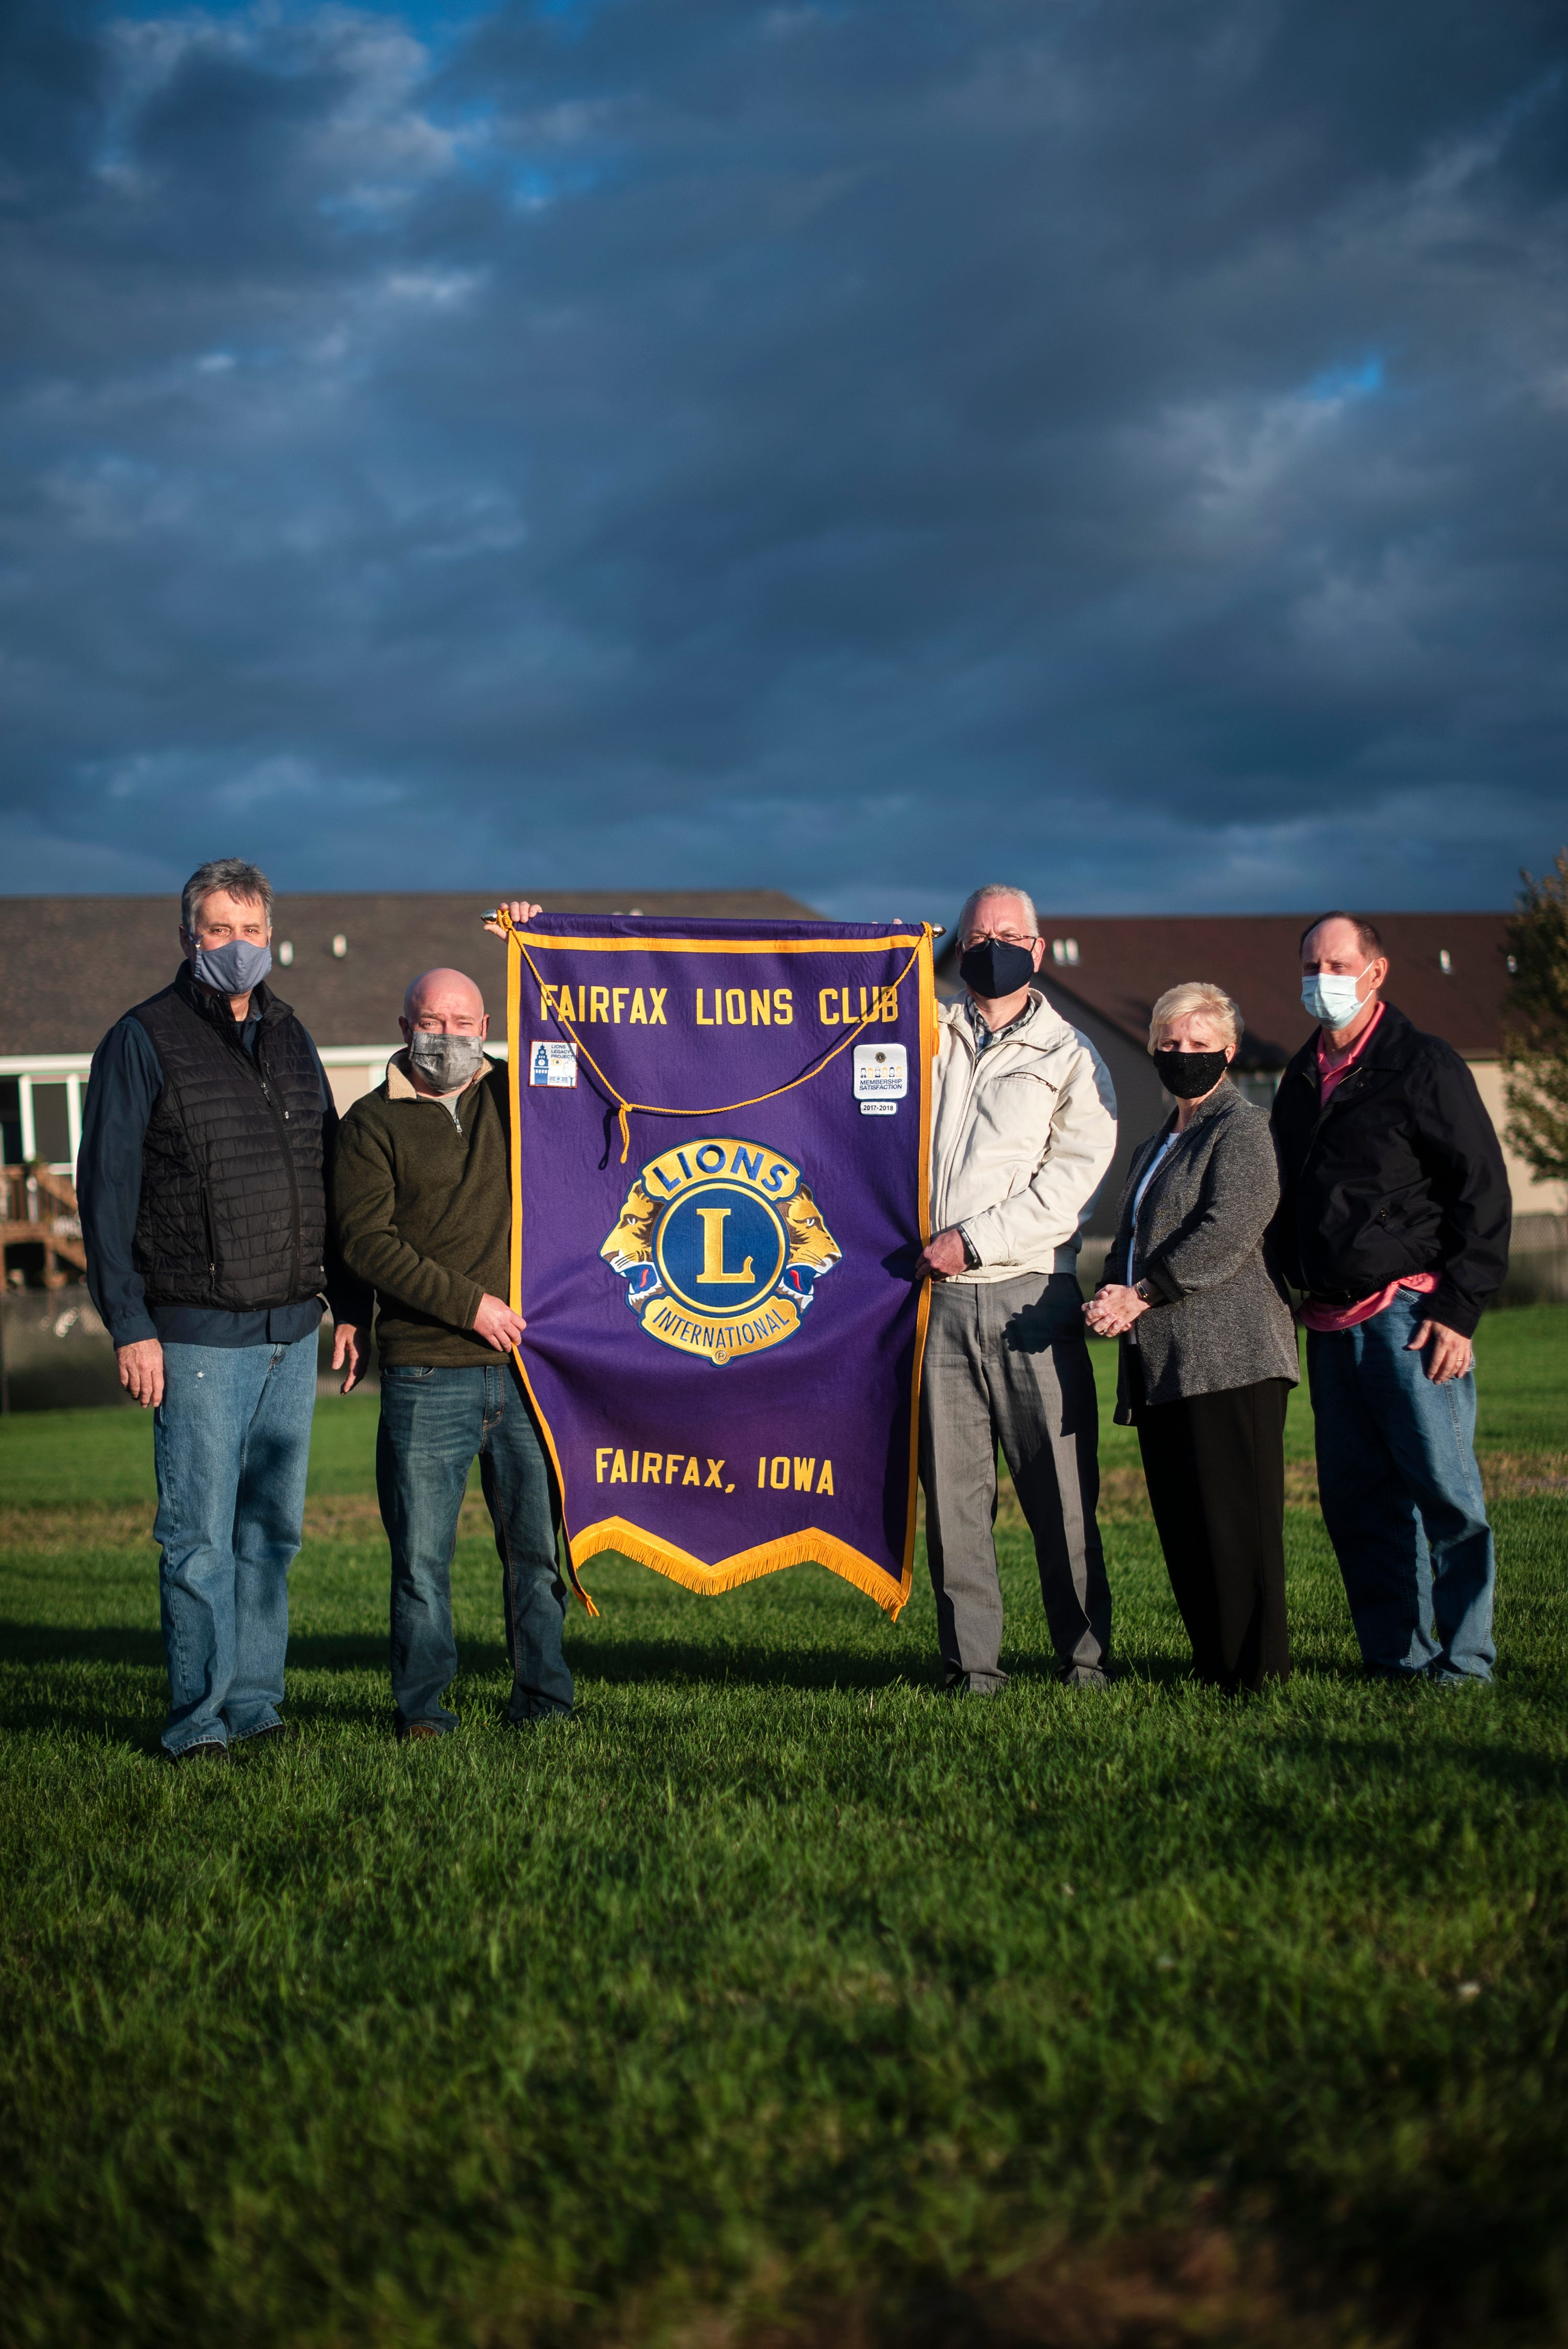 Fairfax Lions Club members Ed Faber, Dusty Weeks, Dean Schrader, Deb Mallie, and Paul Mallie pose for a portrait to honor their friend Kathy Everett, who died of COVID-19.